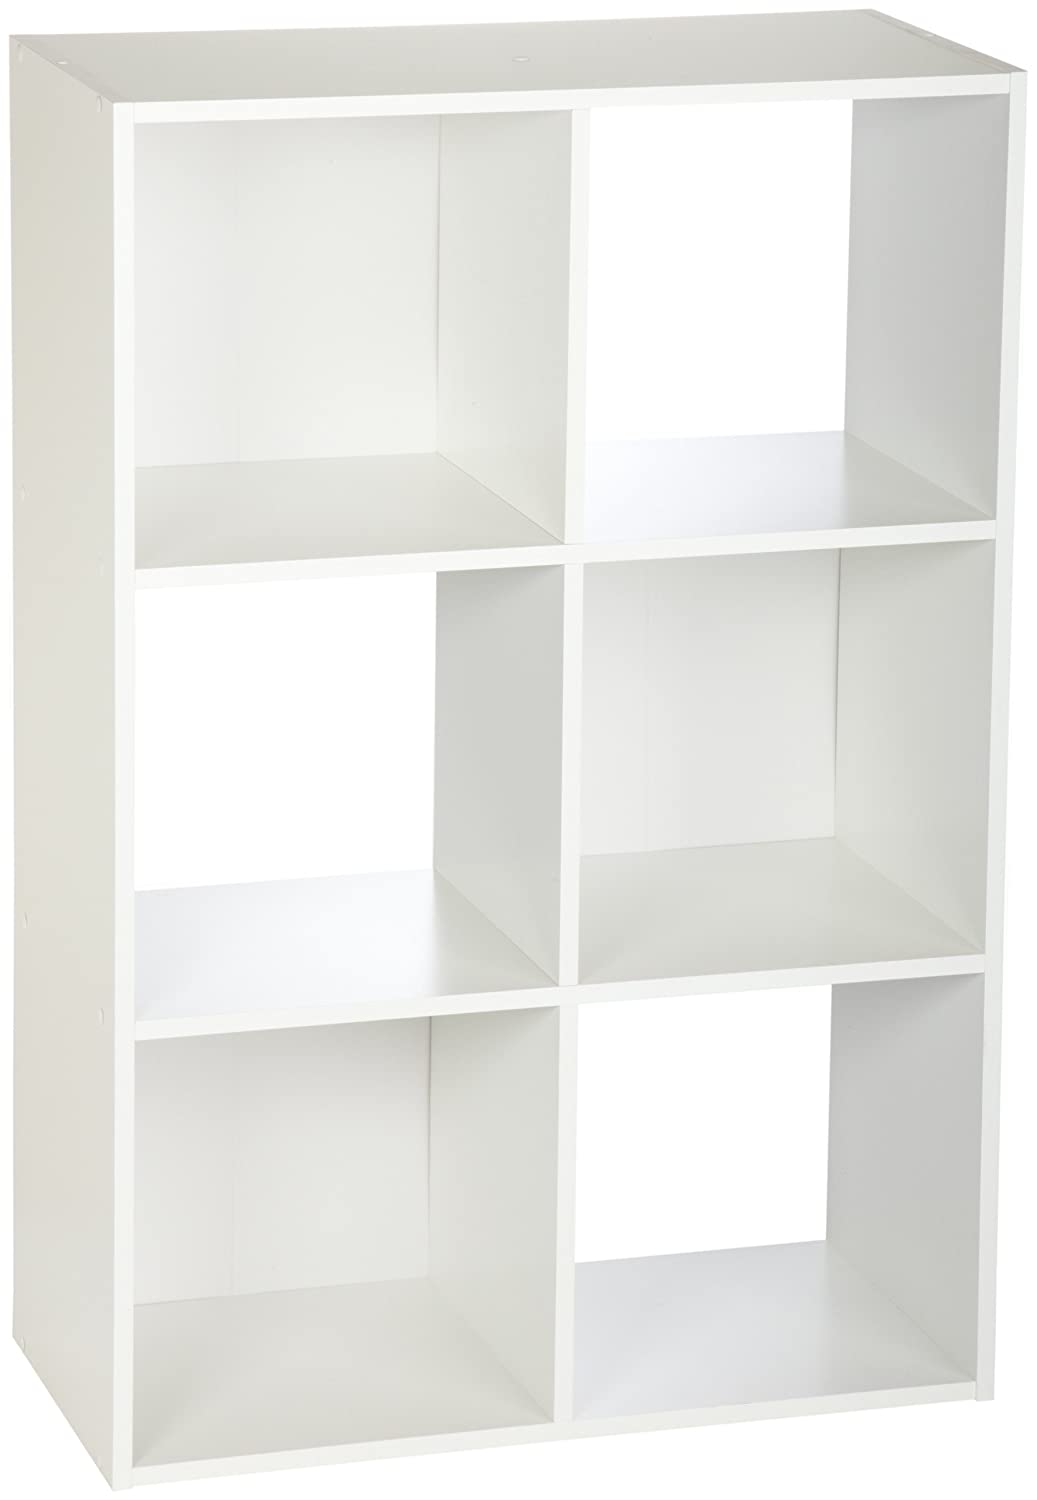 ClosetMaid Cube Organizer - Various Sizes & Shapes Available